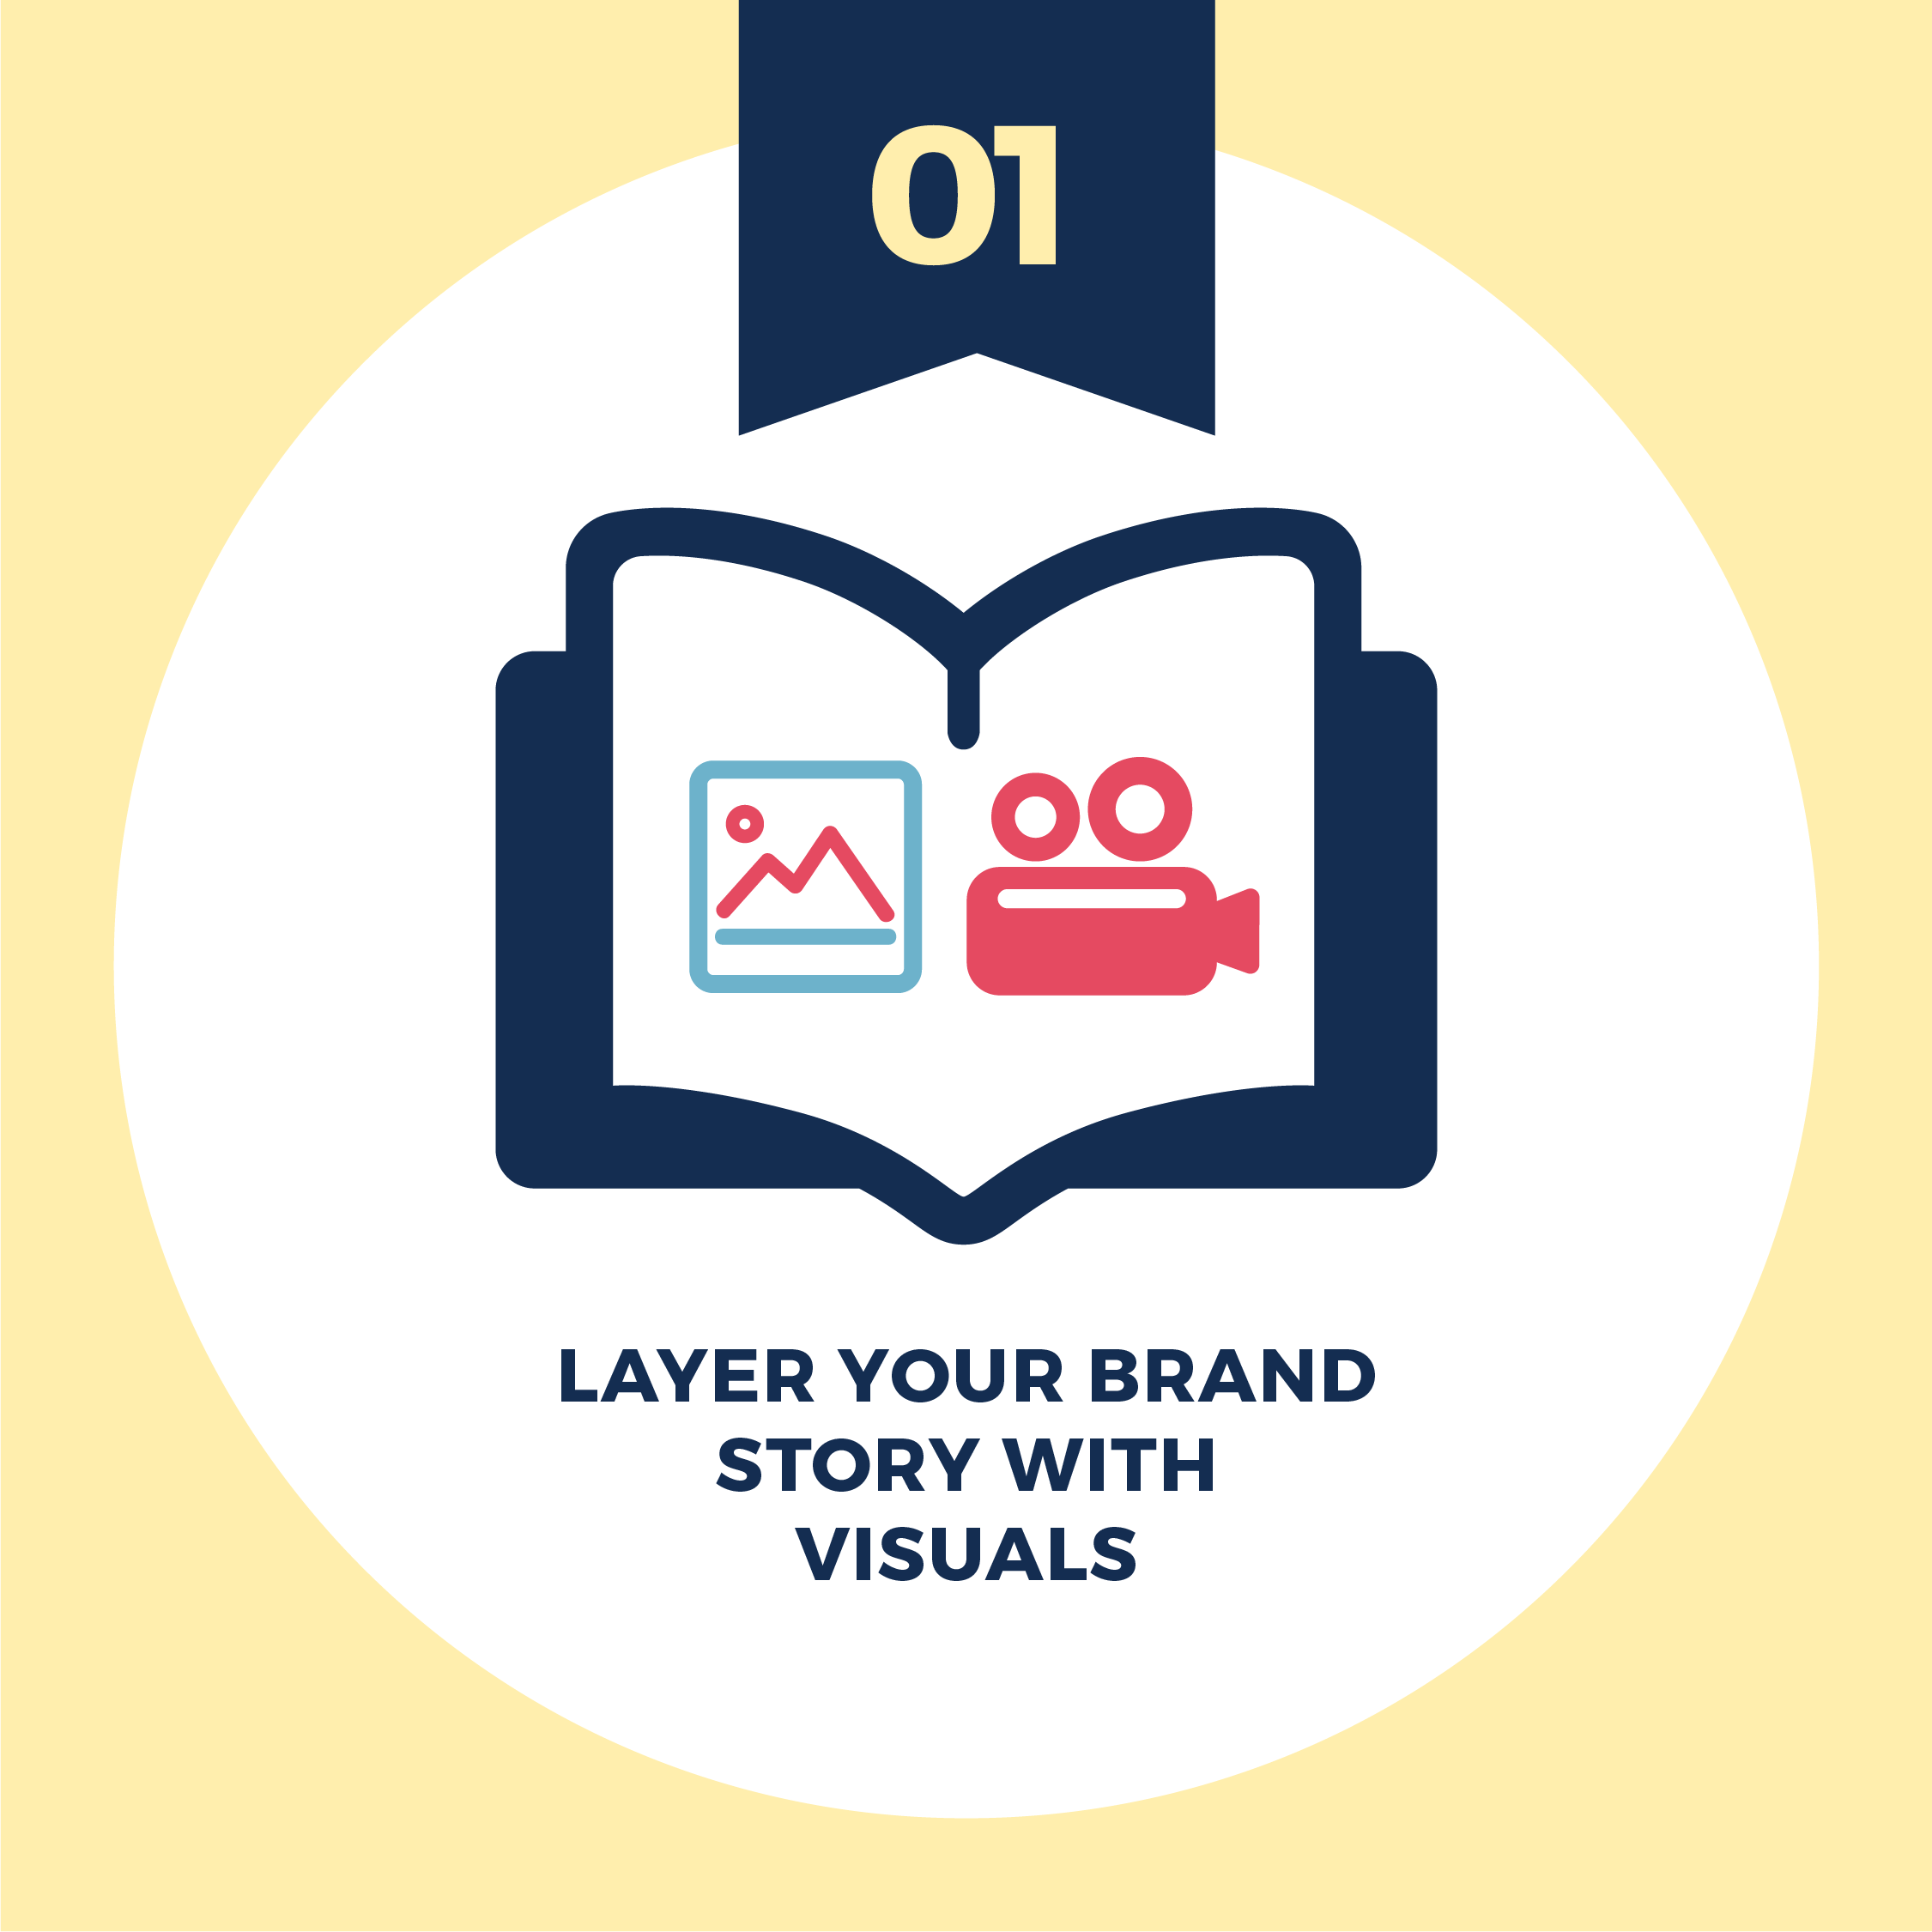 Make your brand story relatable with visuals tip number 1 - layer your brand story with visuals such as images and video